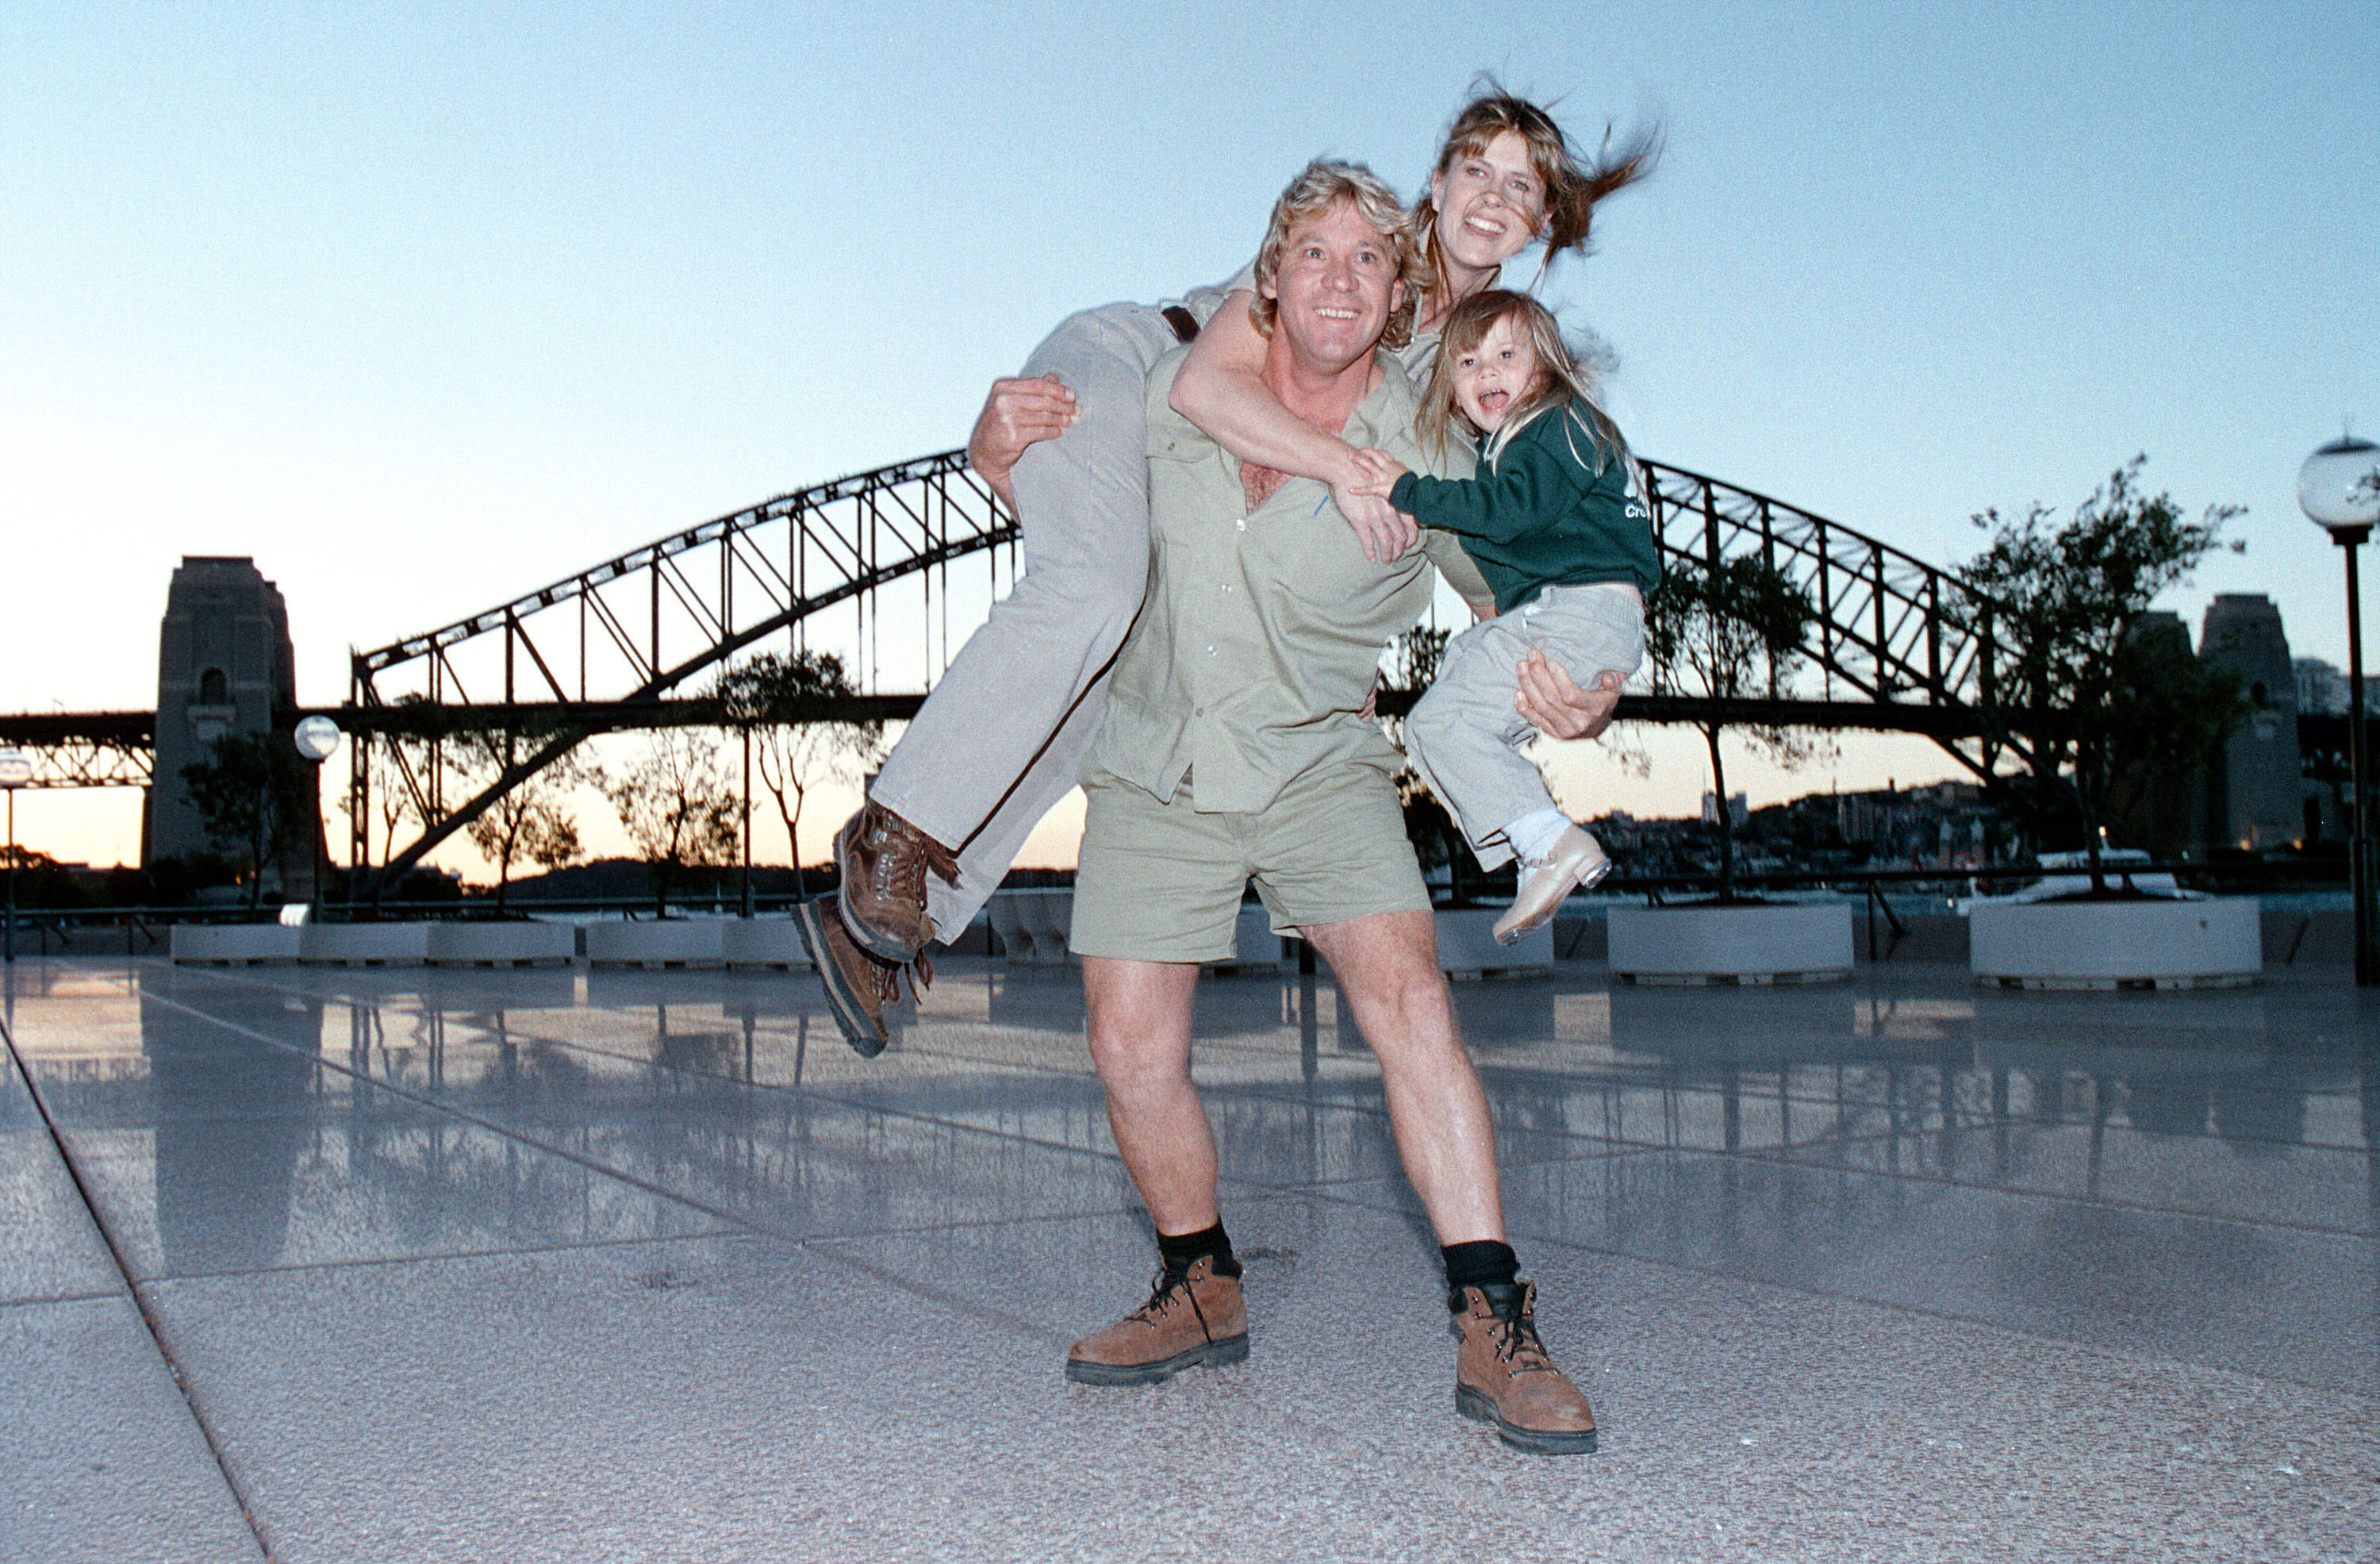 Steve lifts his wife, Terri, and daughter, Bindi, in the air at the George Street Theatre in Sydney